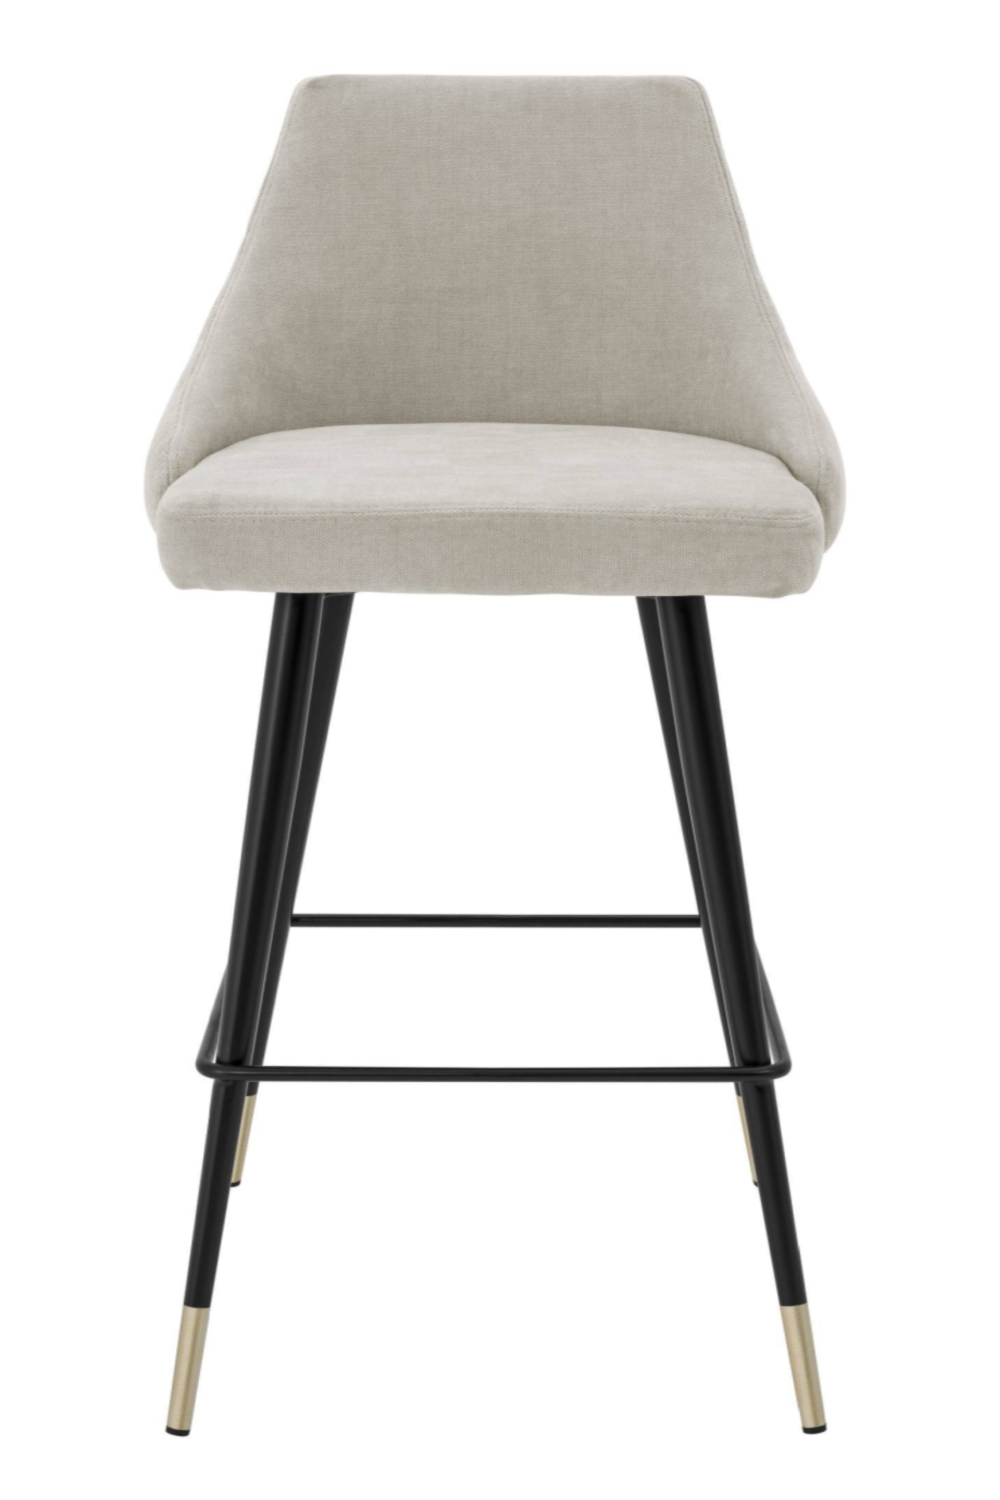 Beige Upholstered Bar Stool | Eichholtz Cedro